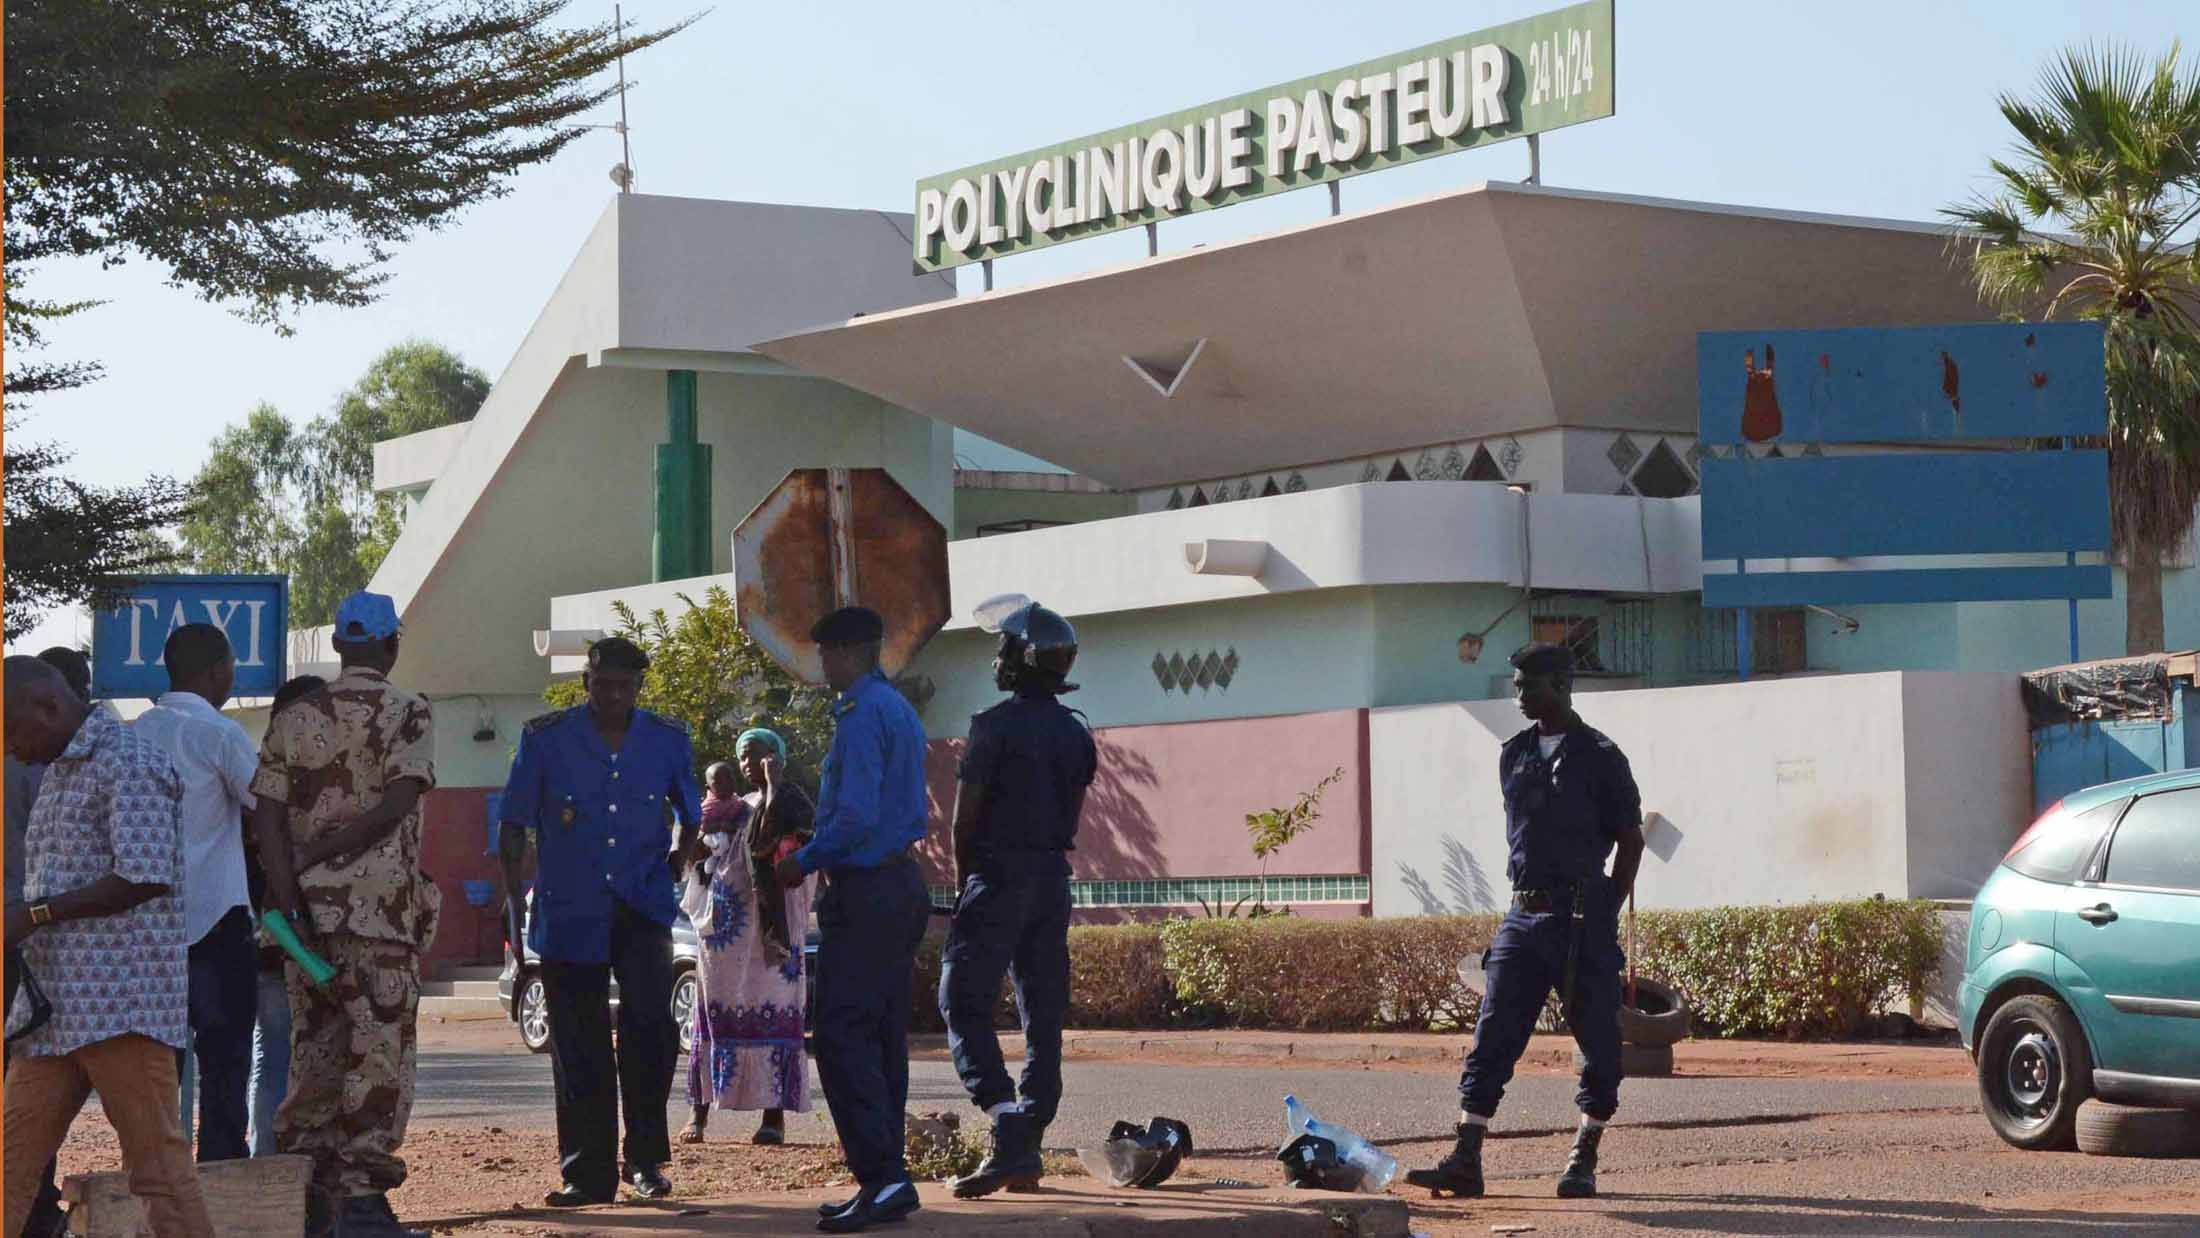 Police turned away patients at the Clinique Pasteur in Bamako, after the hospital was put under quarantine for the Ebola virus.